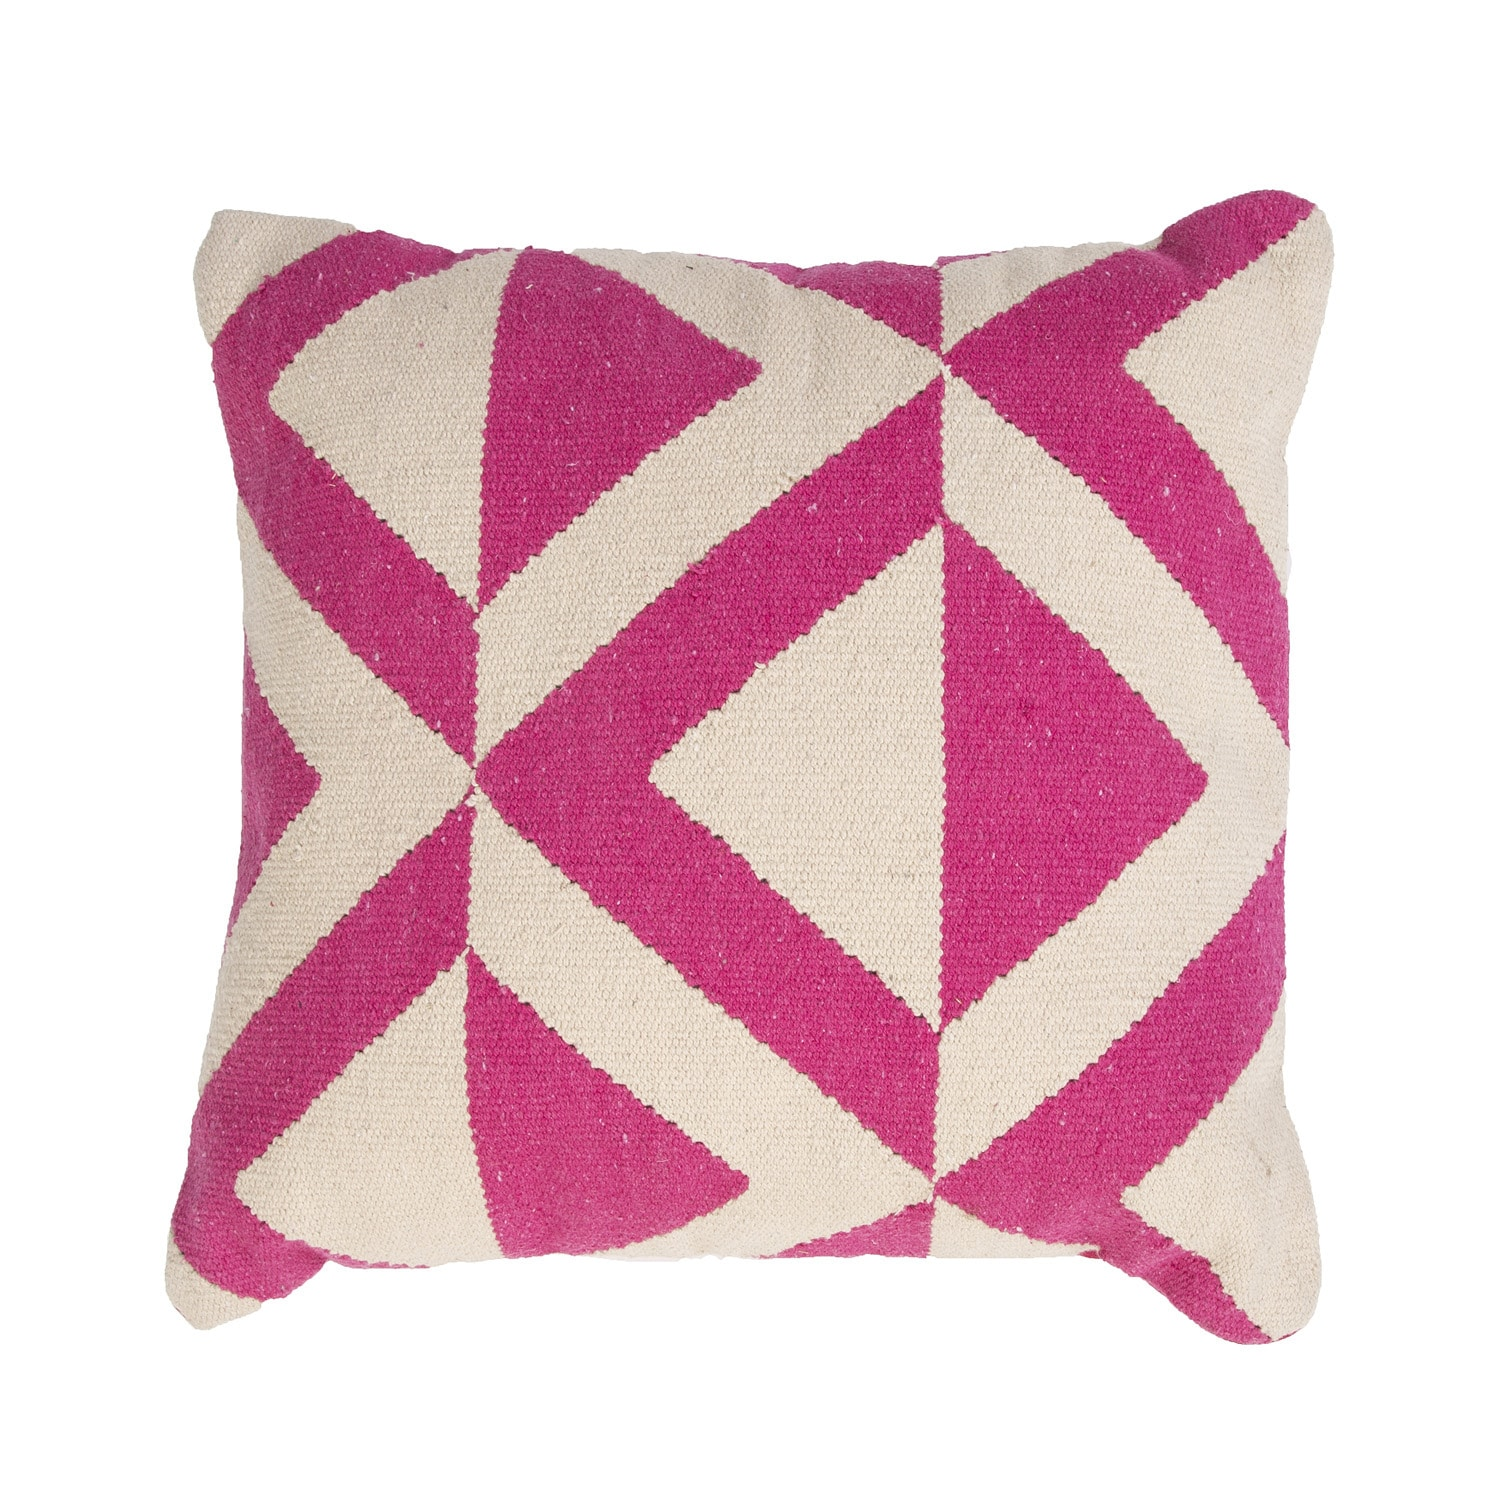 Handmade Pink and Ivory Cotton 18x18-inch Throw Pillow